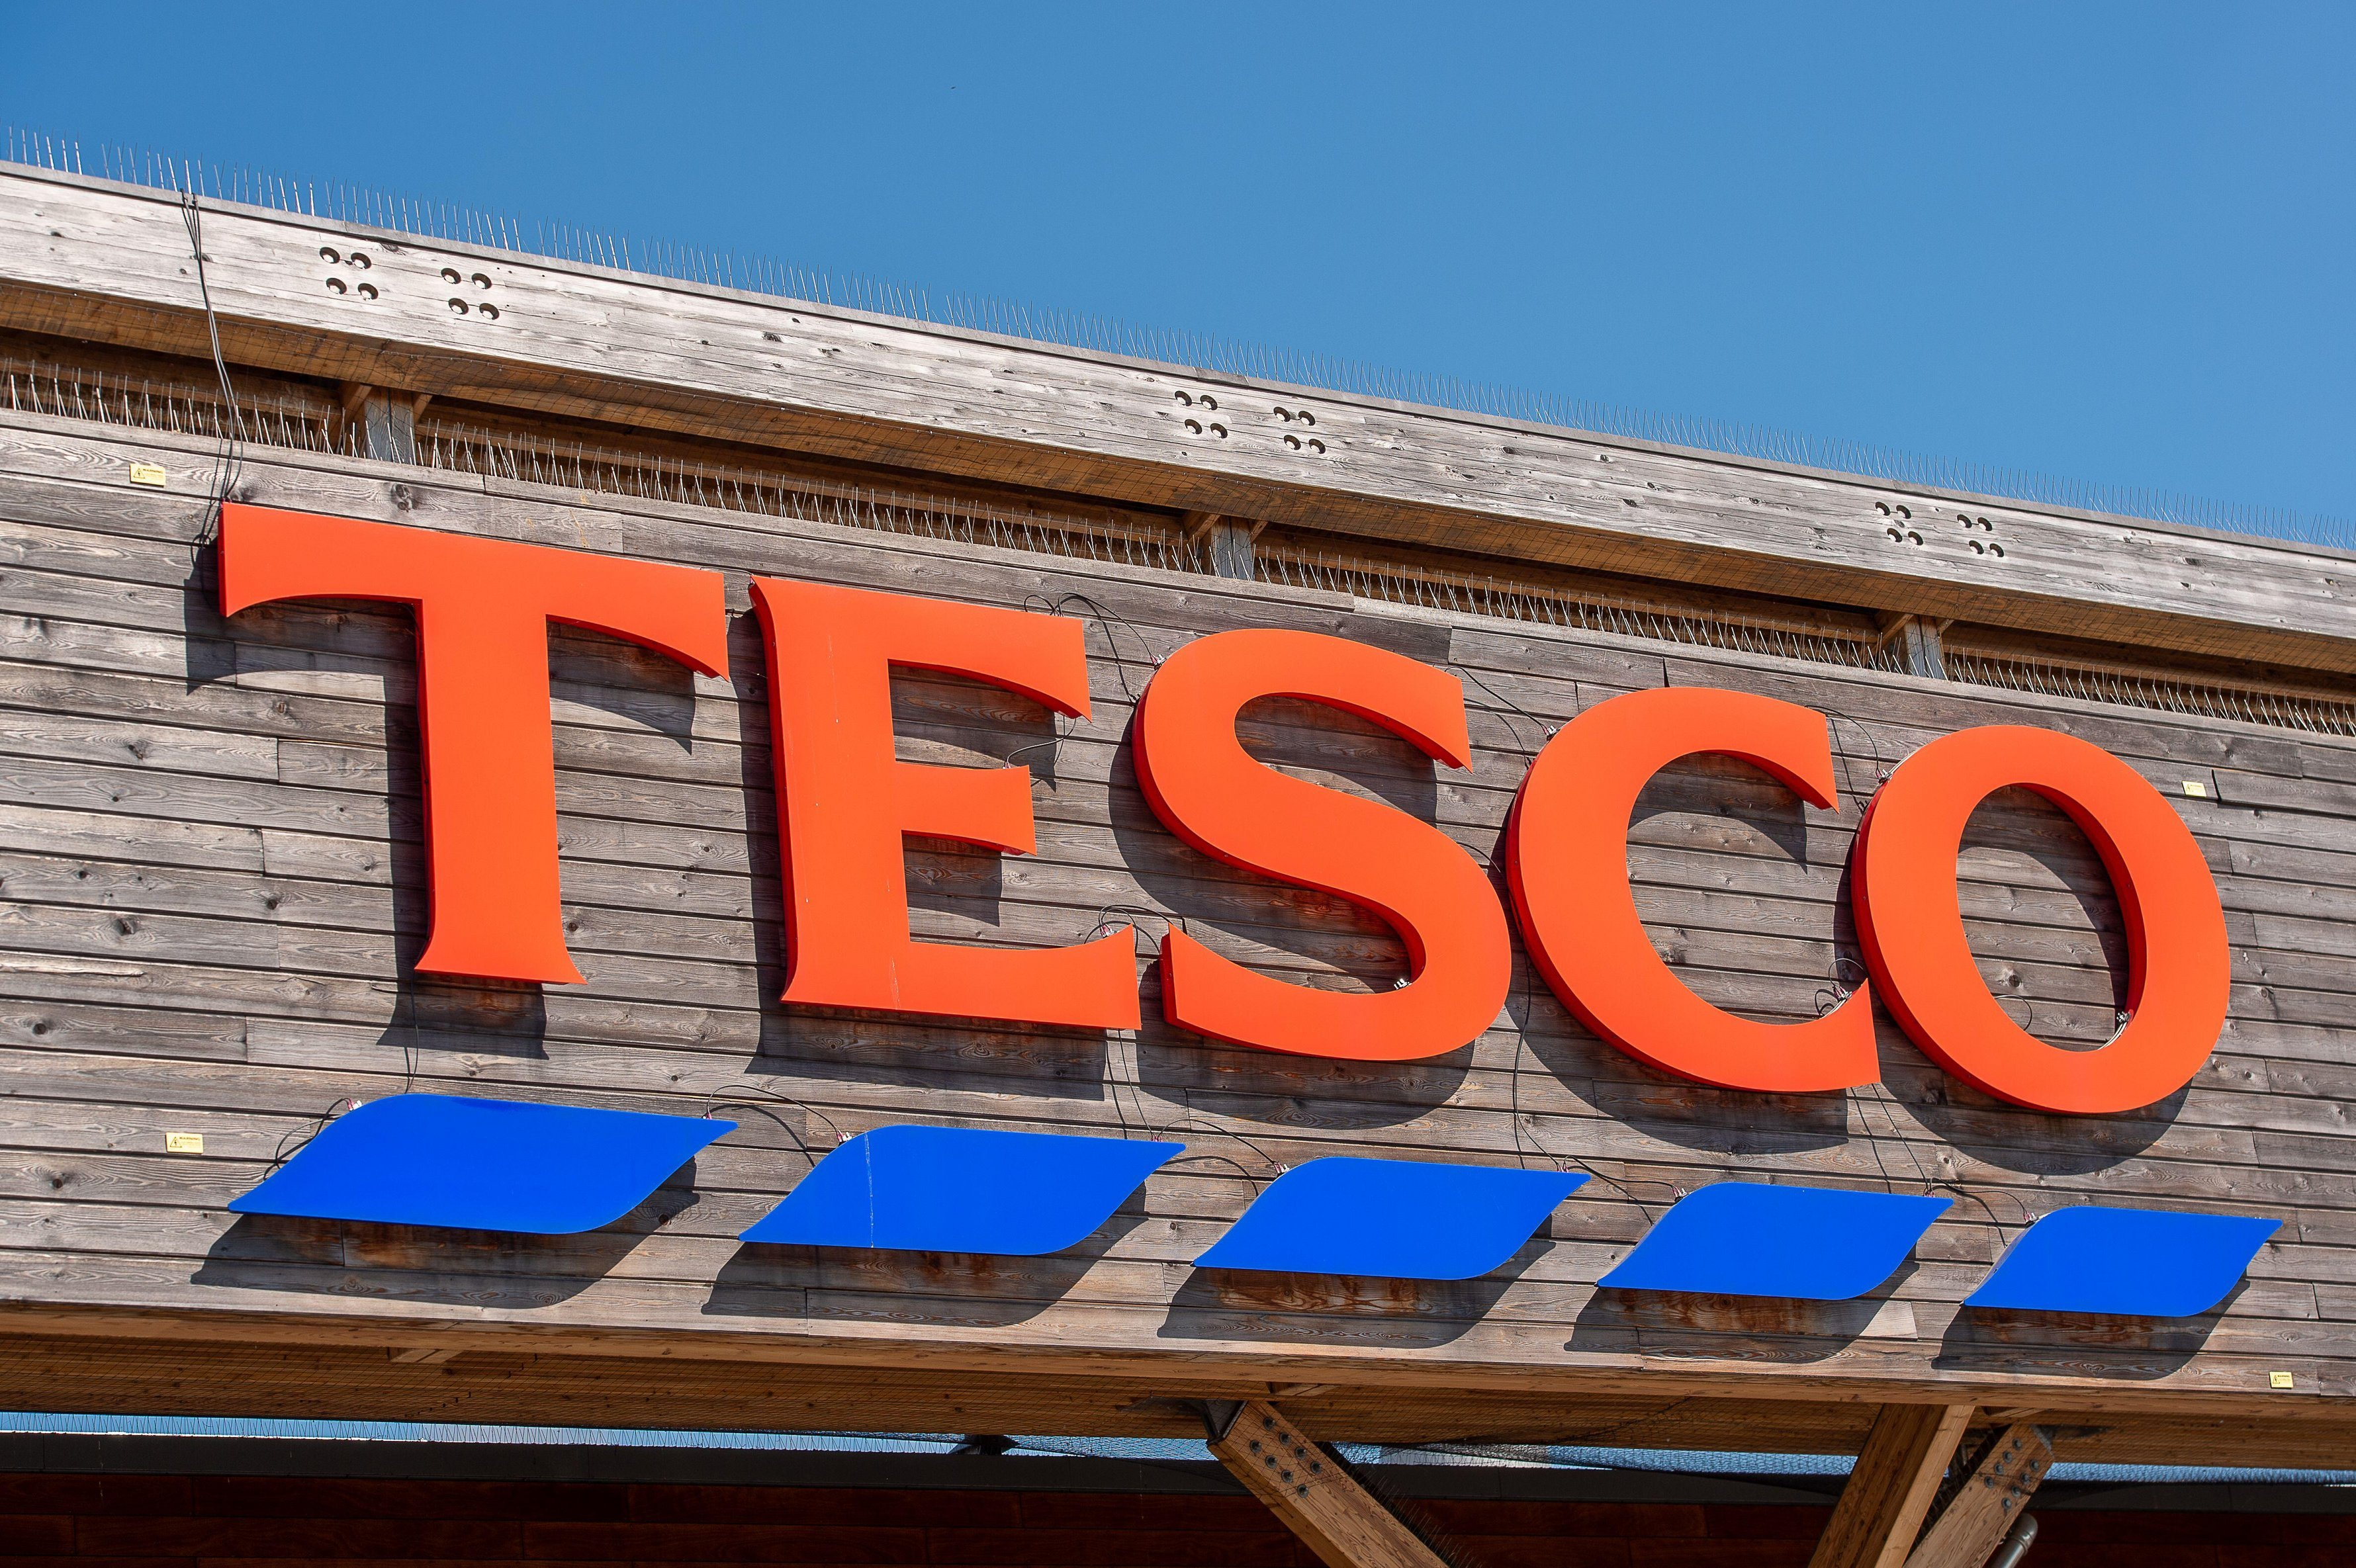 Tesco has been accused of marking up some of its products